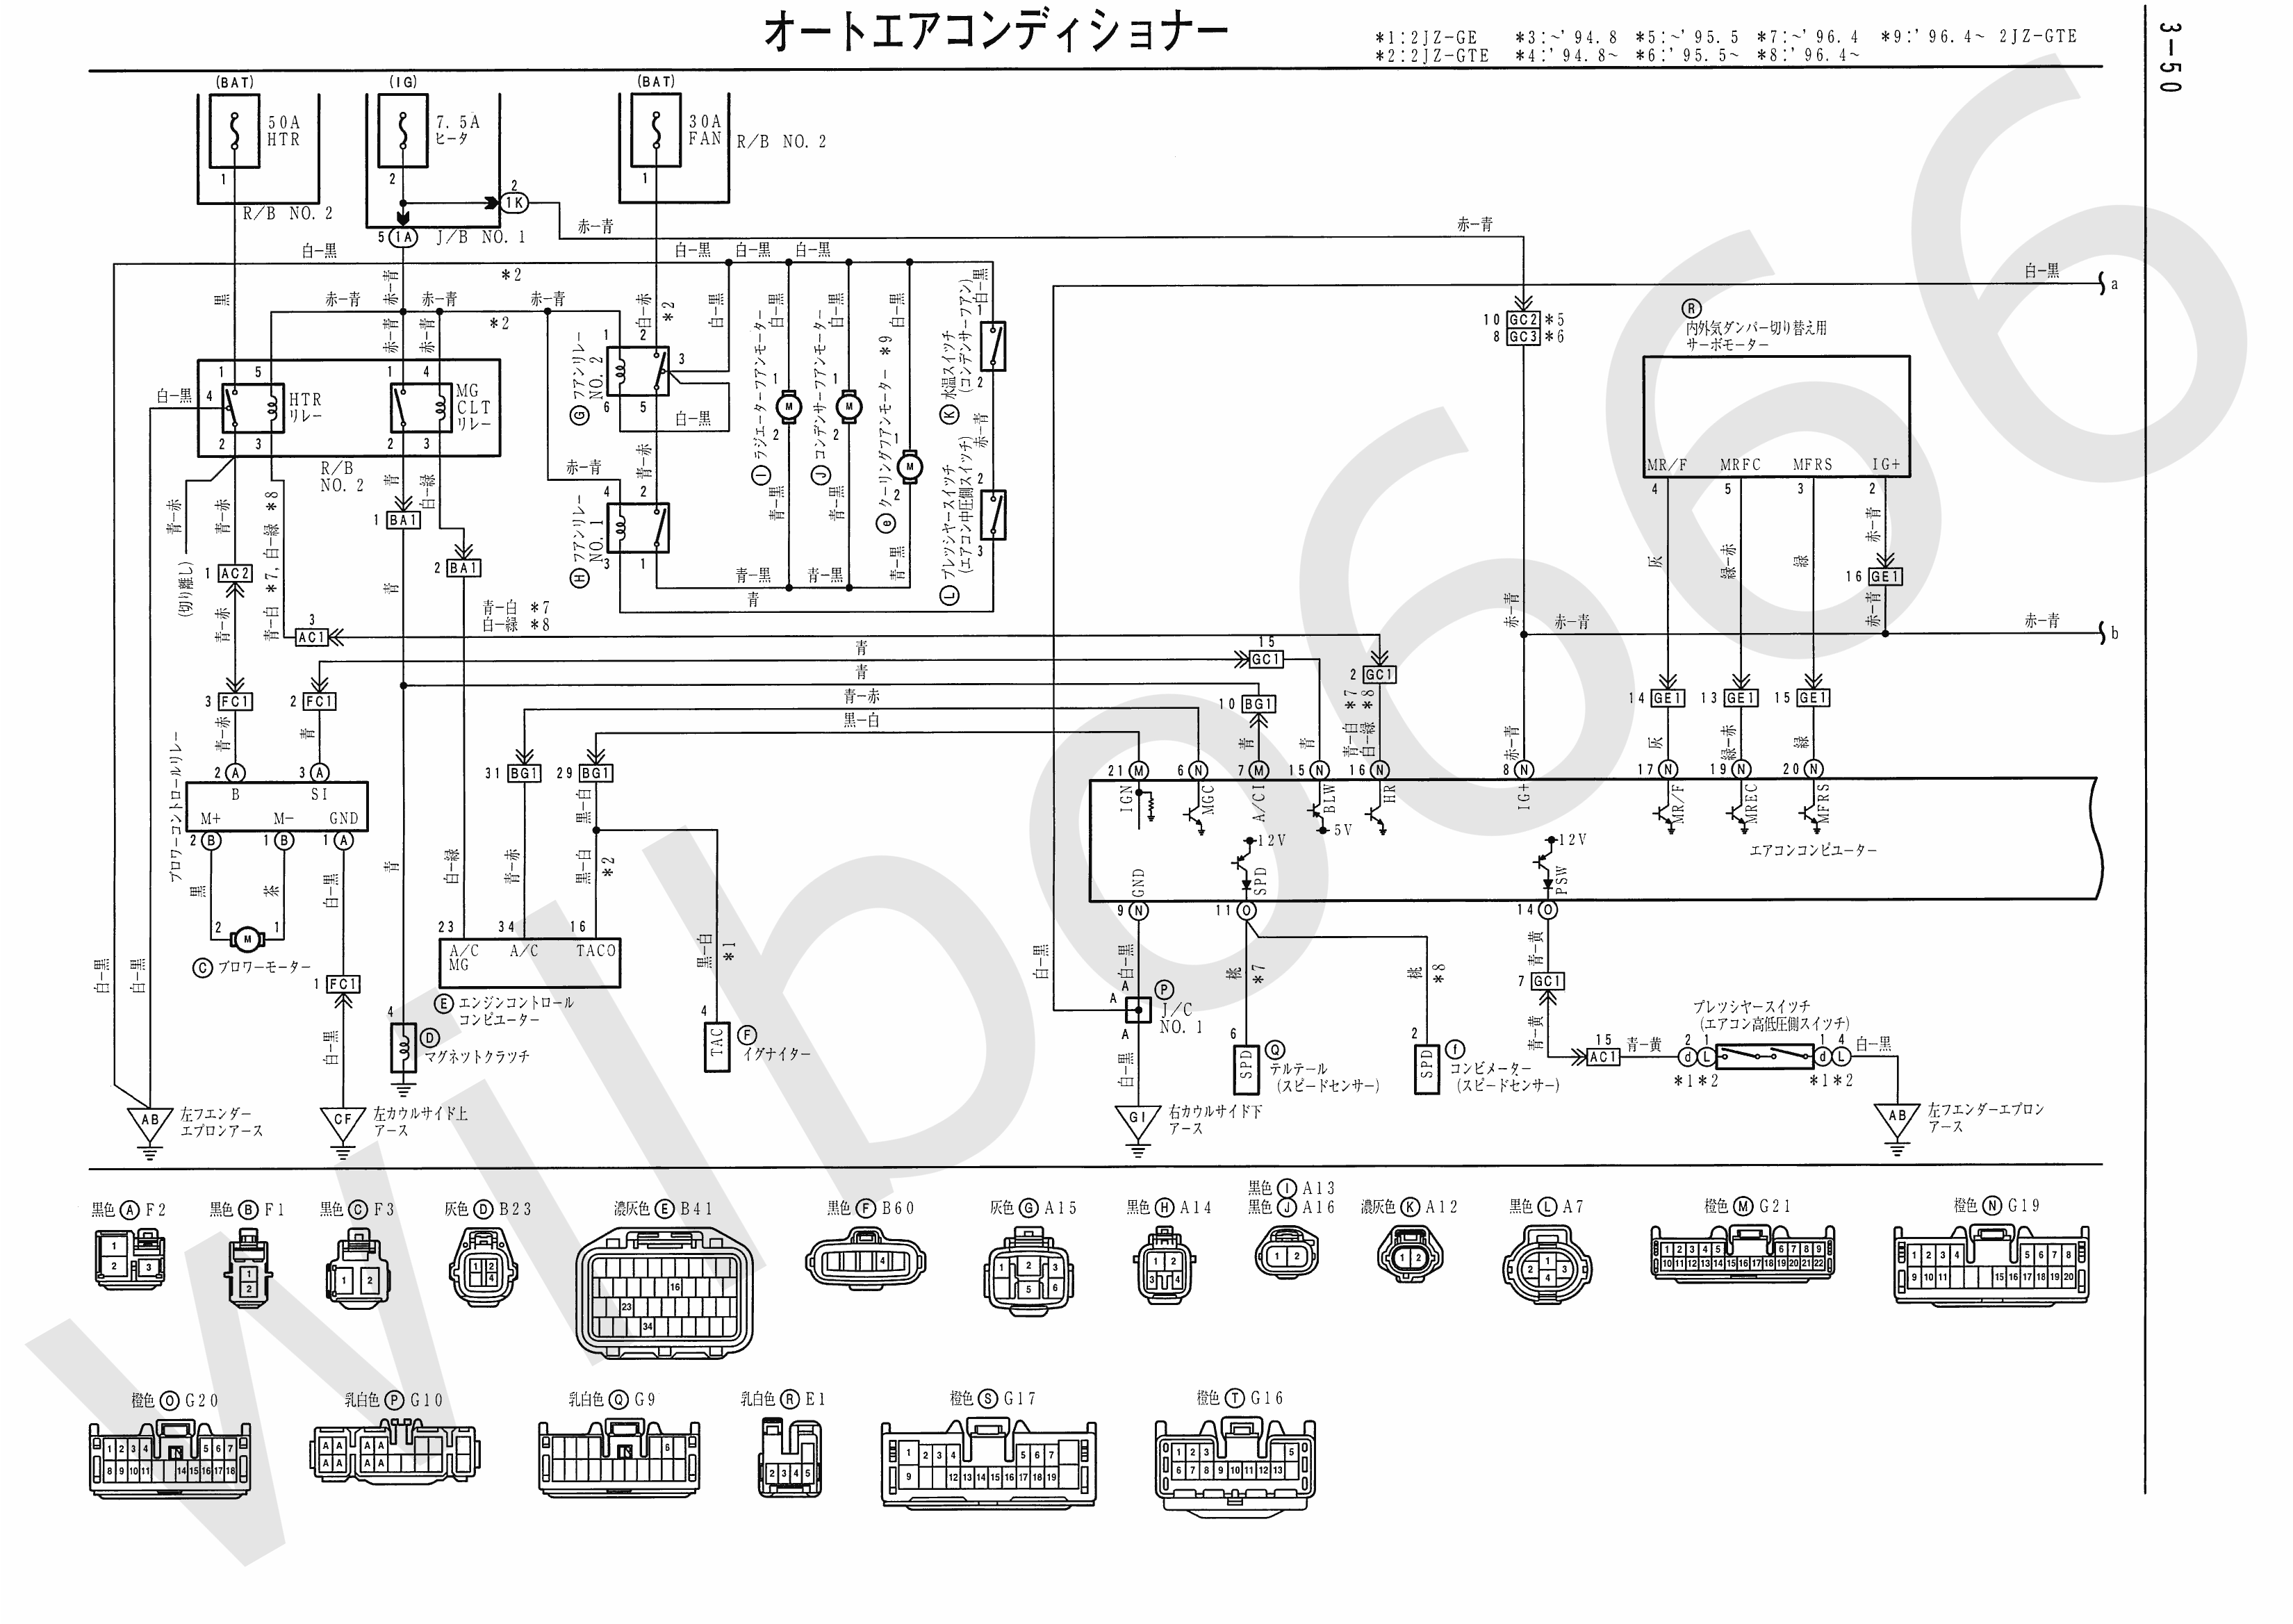 Low Voltage Outdoor Lighting Wiring Diagram further Sch Front besides Schematic Symbol Solenoid likewise Special Report Out Of Line Asking For A Single Line as well 2JZ GTE 20VVTi 20JZA80 20Supra 20Engine 20Wiring. on industrial electrical wiring diagram symbols